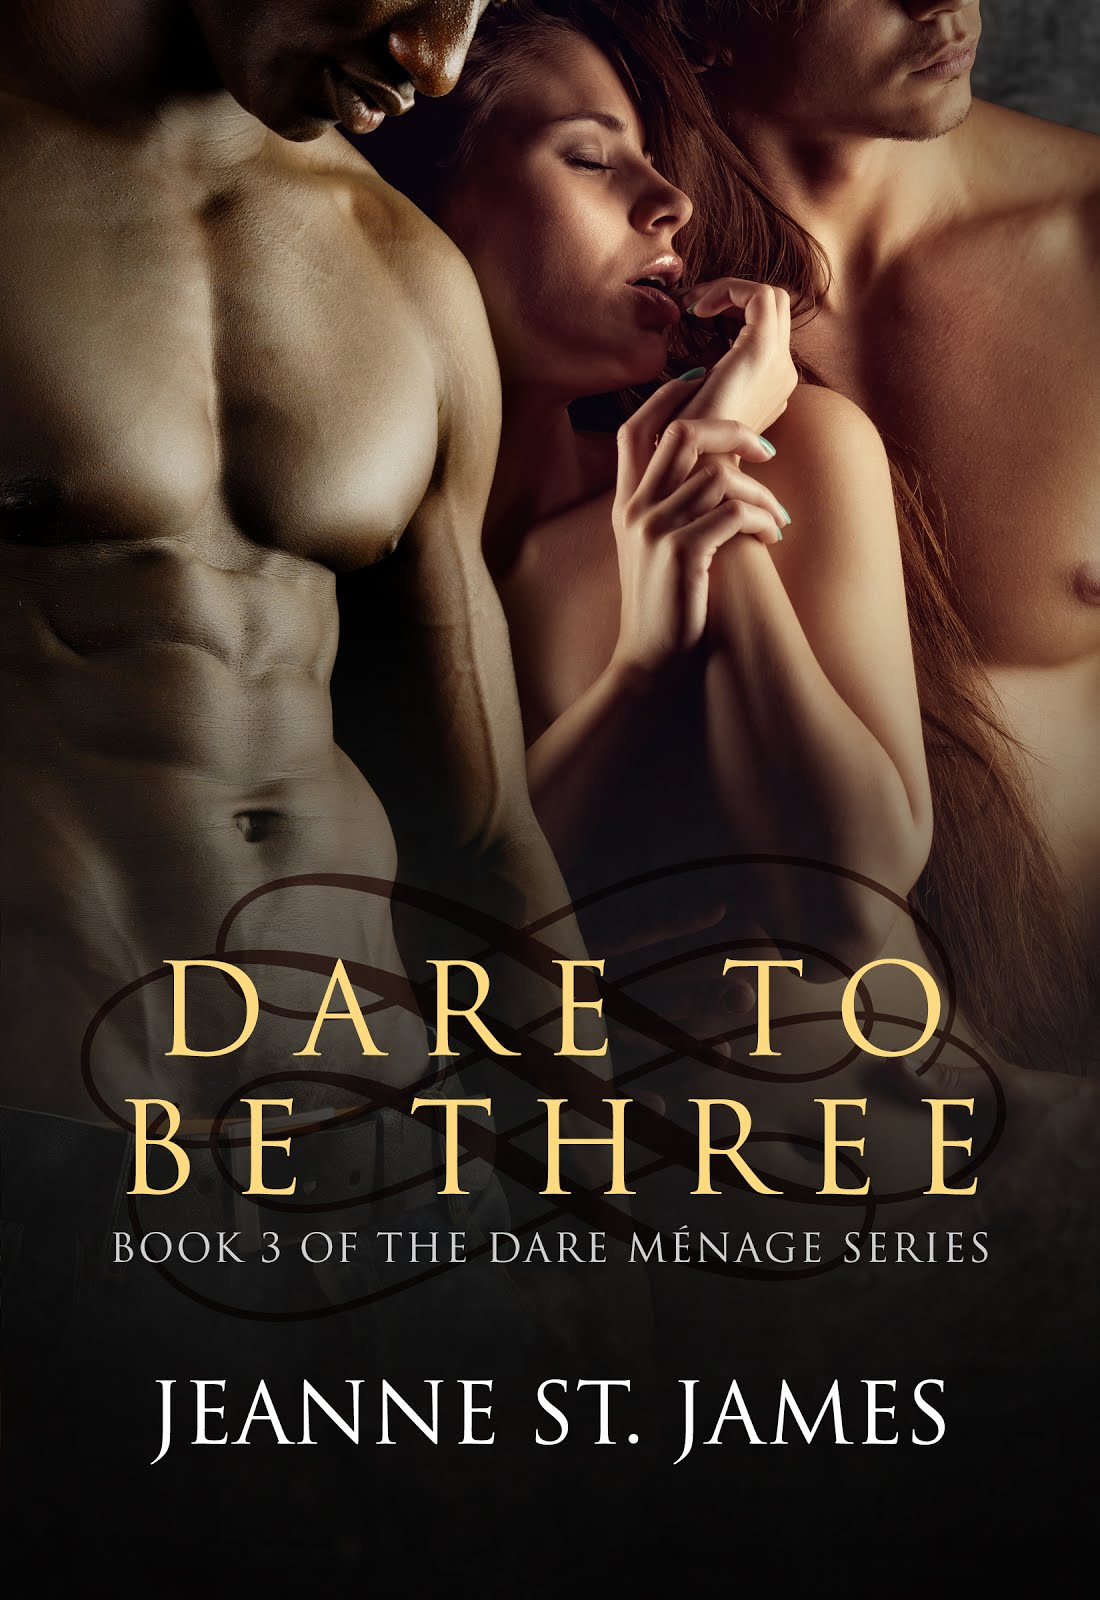 Dare to be Three